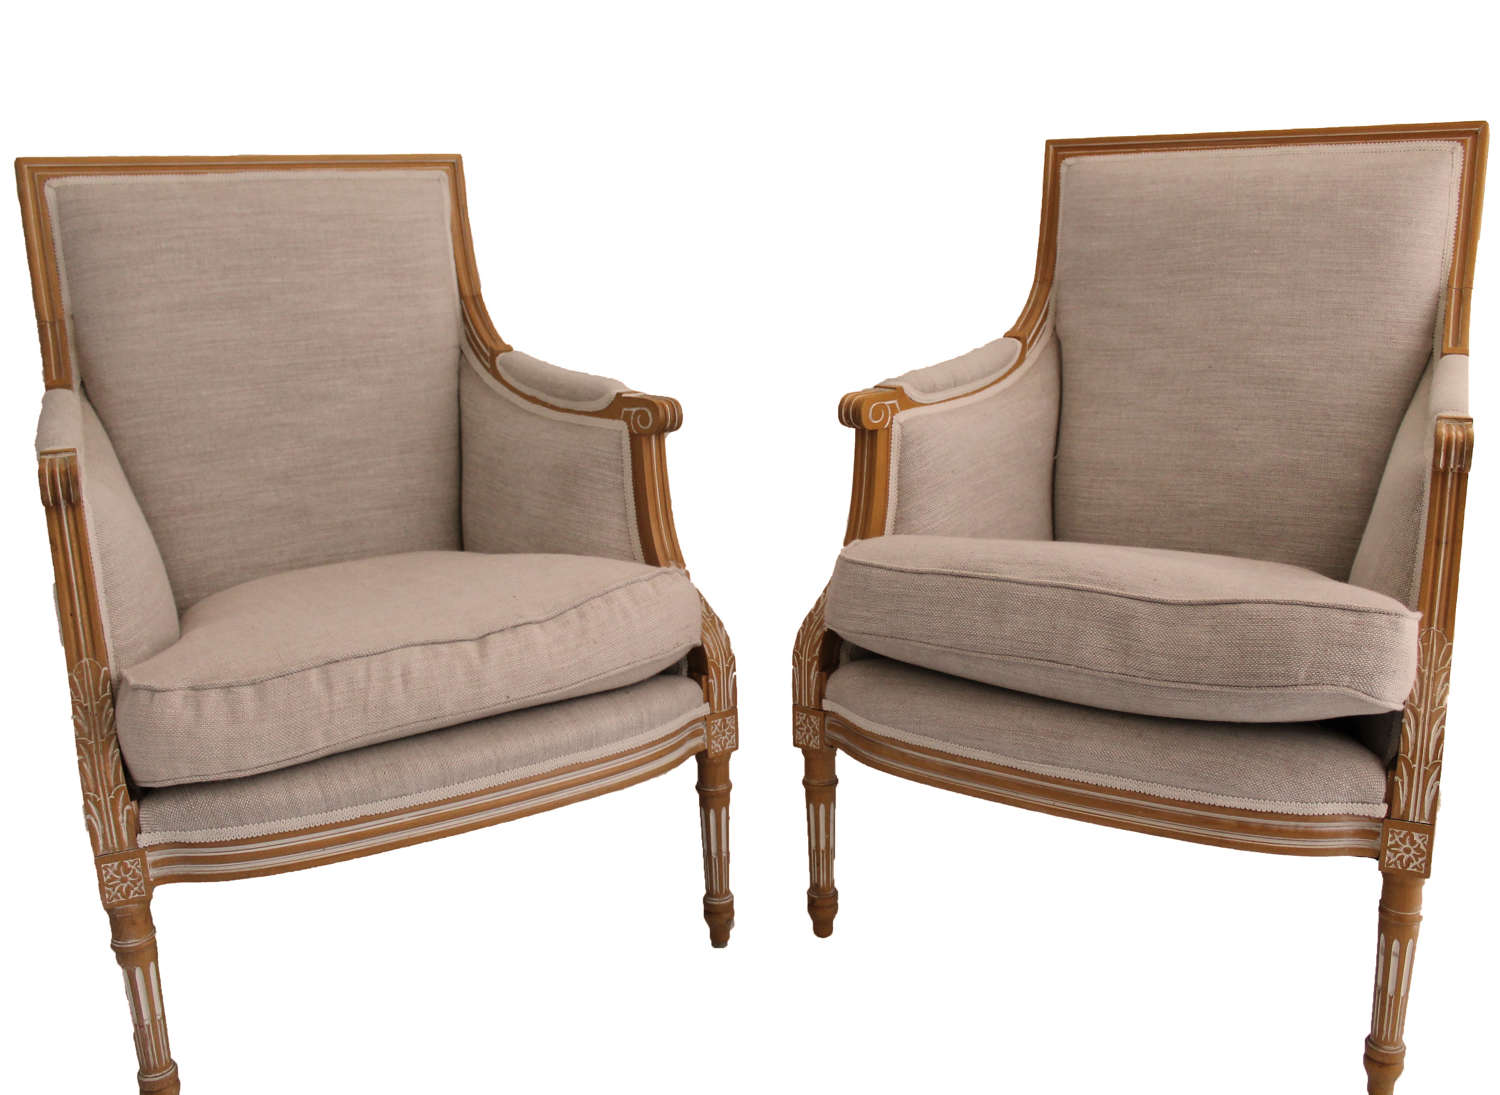 Pair of Louis Armchairs in Fermoie Linen